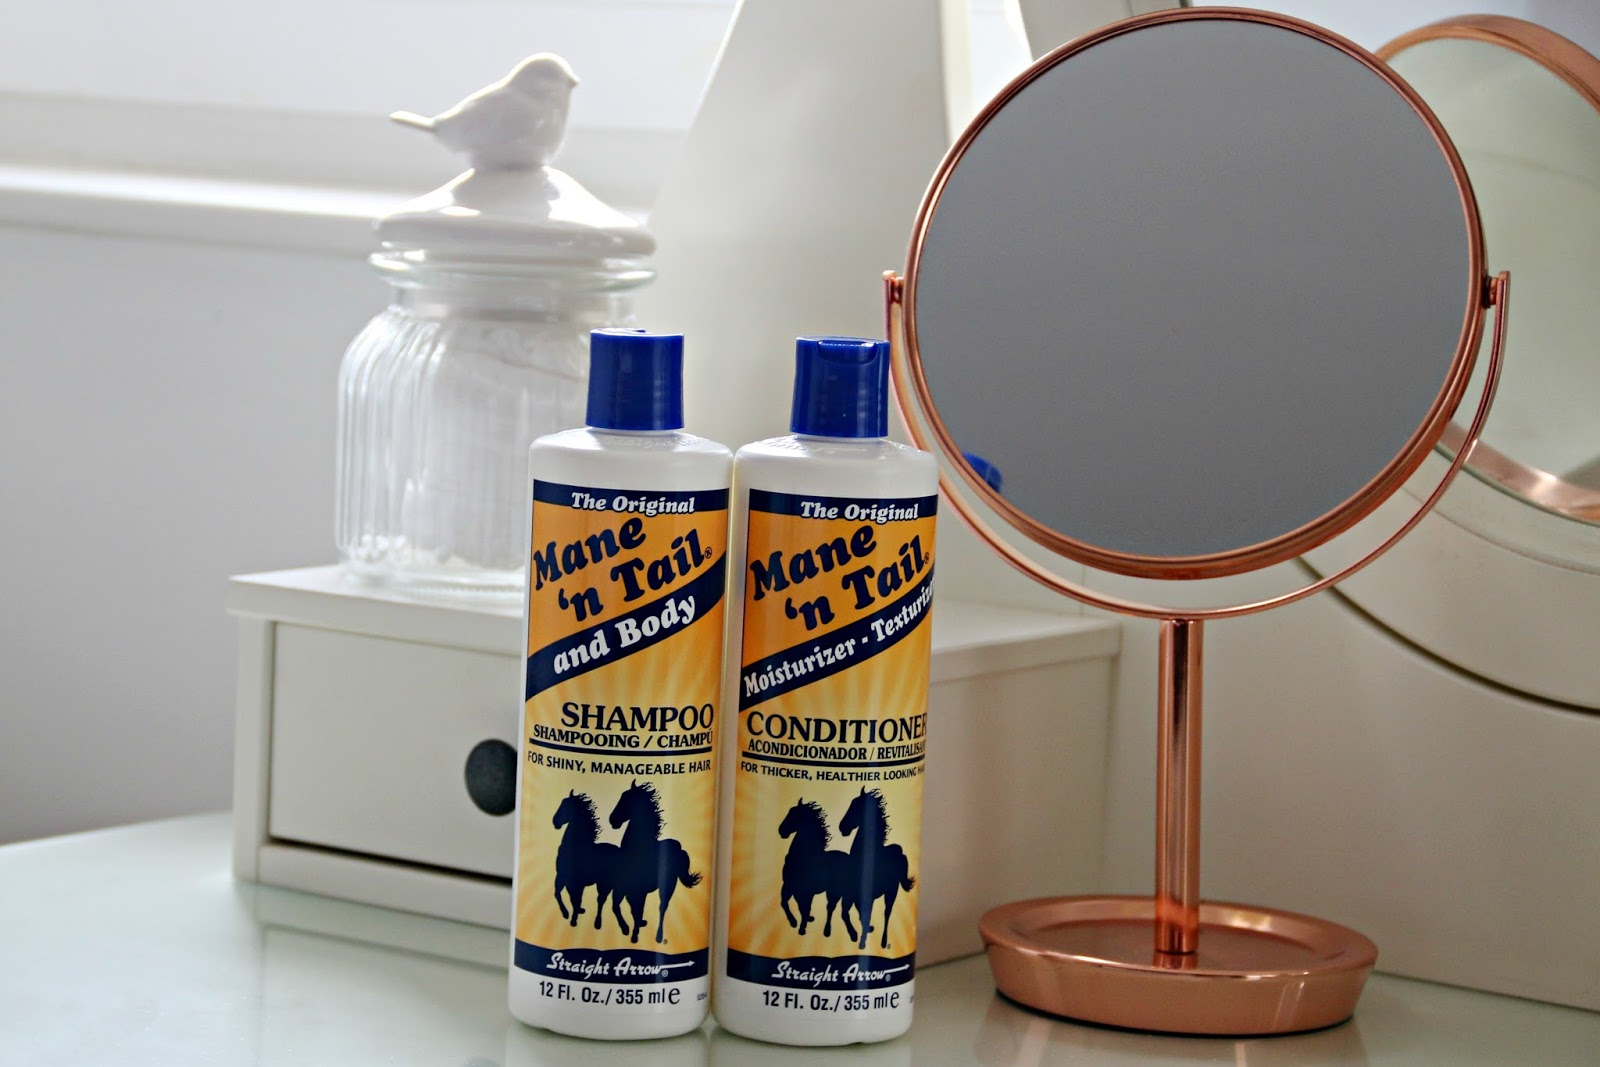 Mane 'n Tail Shampoo and Conditioner Review by UK Beauty Blogger WhatLauraLoves